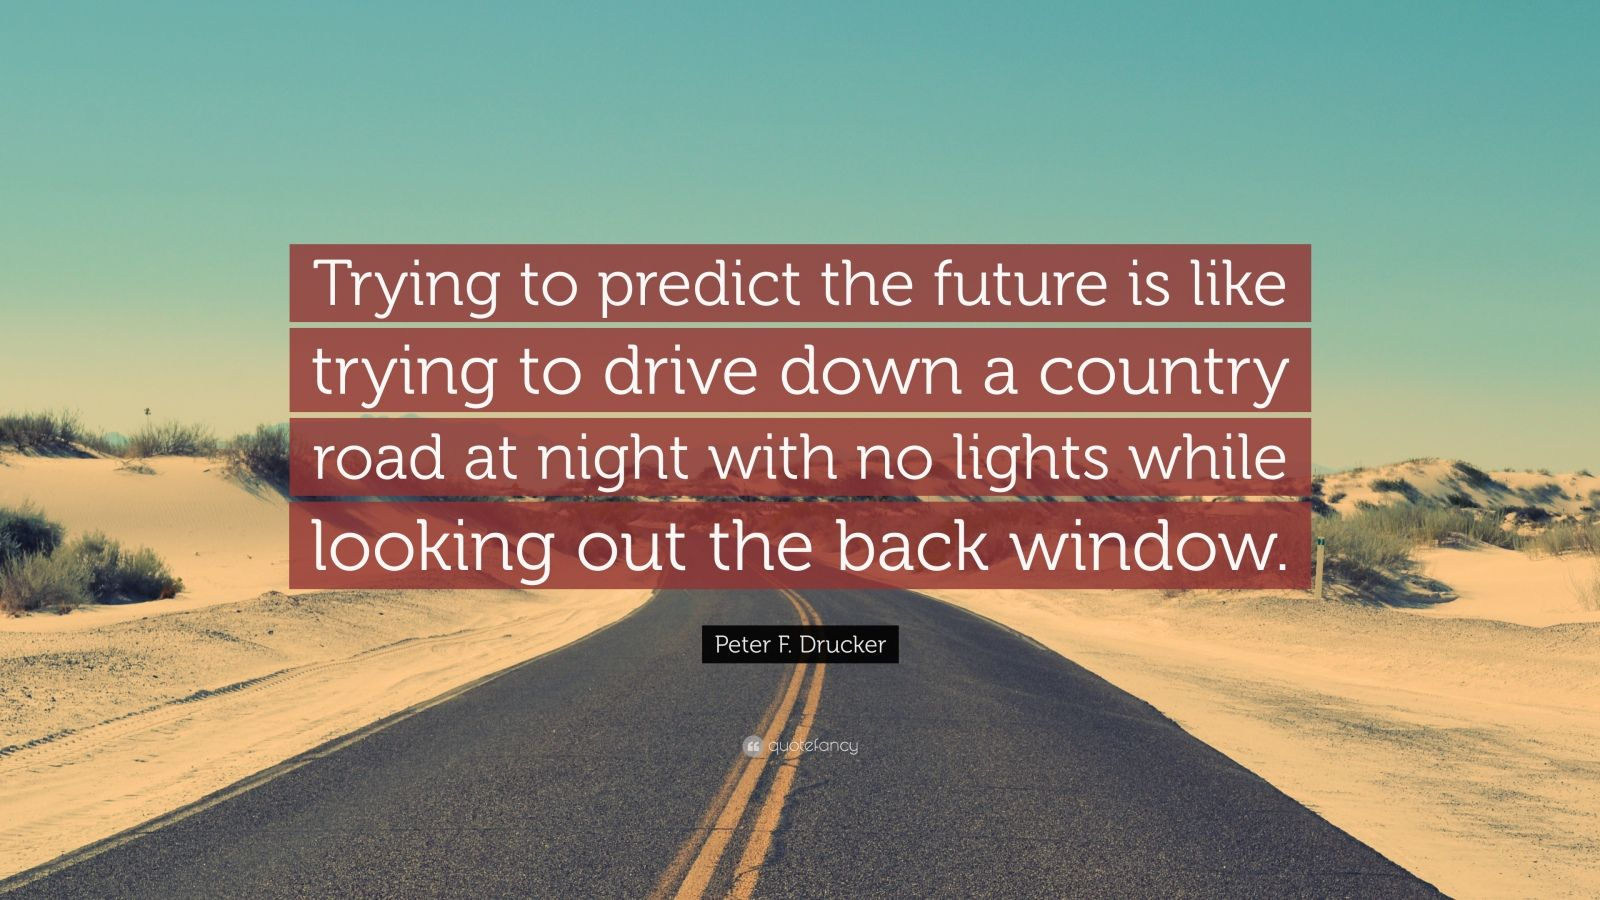 """Peter F. Drucker Quote: """"Trying to predict the future is like trying to drive down a country road at night with no lights while looking out the back window."""""""